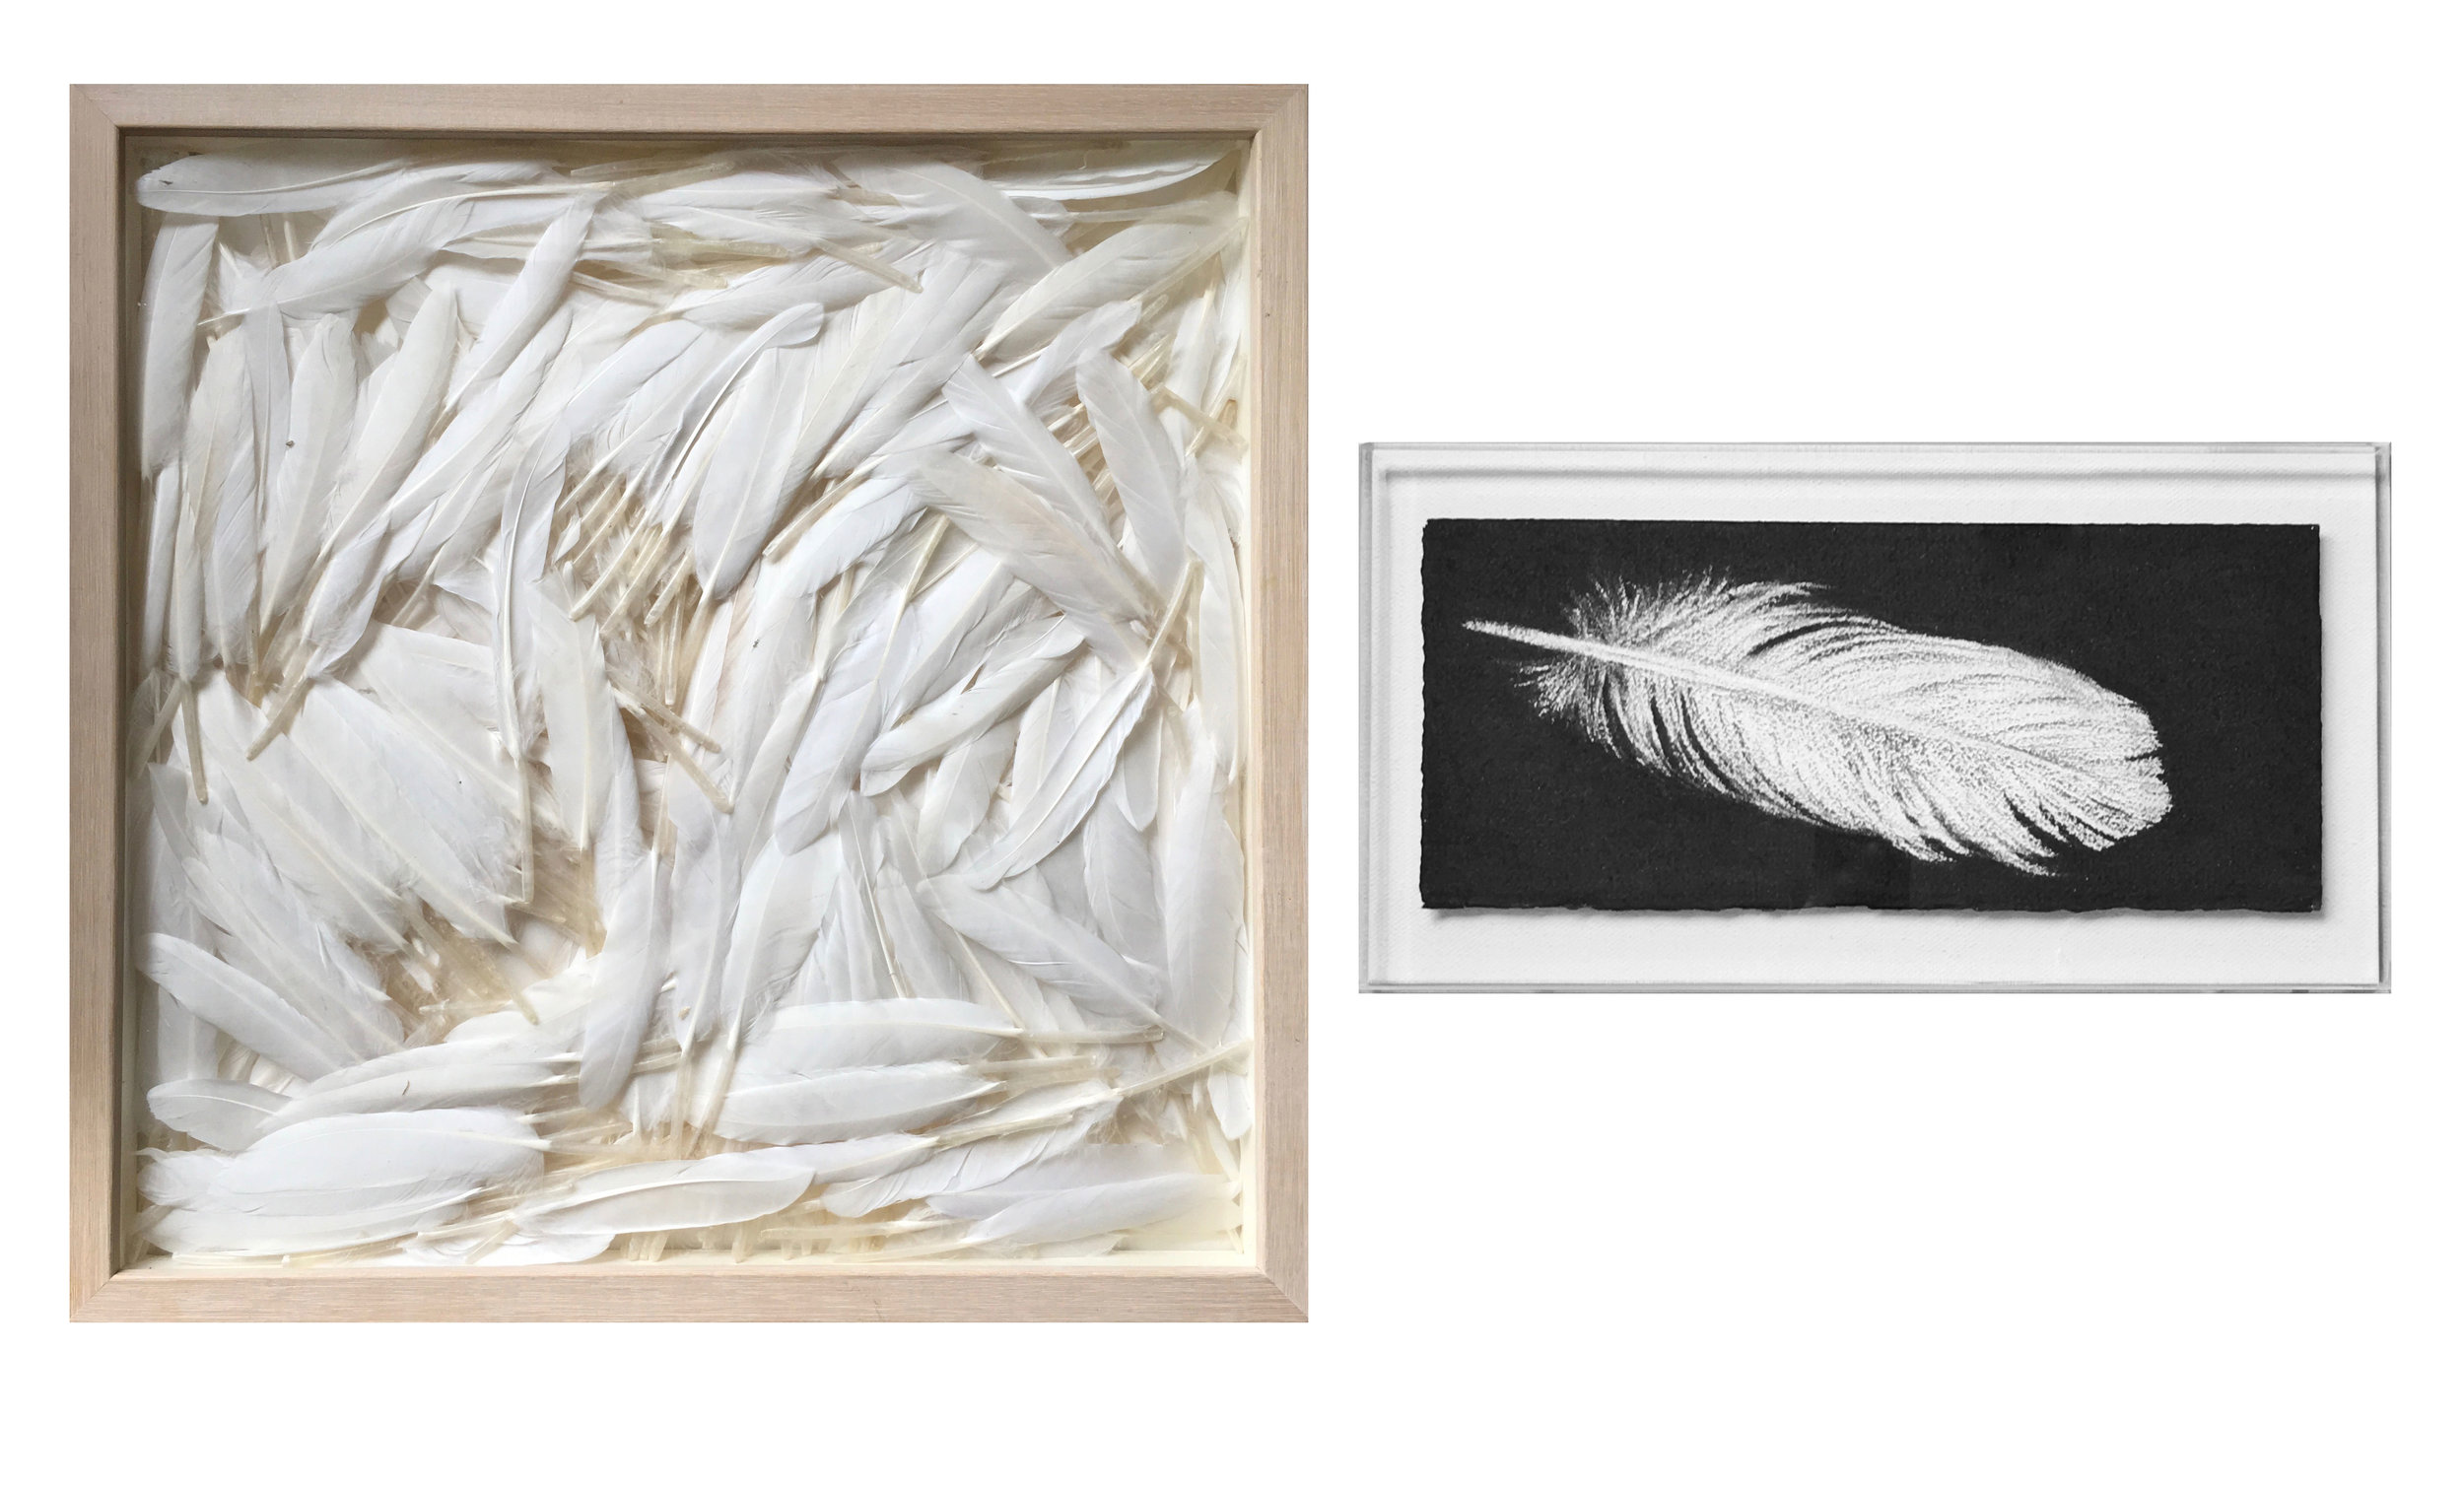 Pollyxenia Joannou, Flight, 2016, 38x38cm framed, feathers  Jennifer Keeler-Milne, Feather, 2016, 31x13.5cm, 36x19cm framed, charcoal on paper